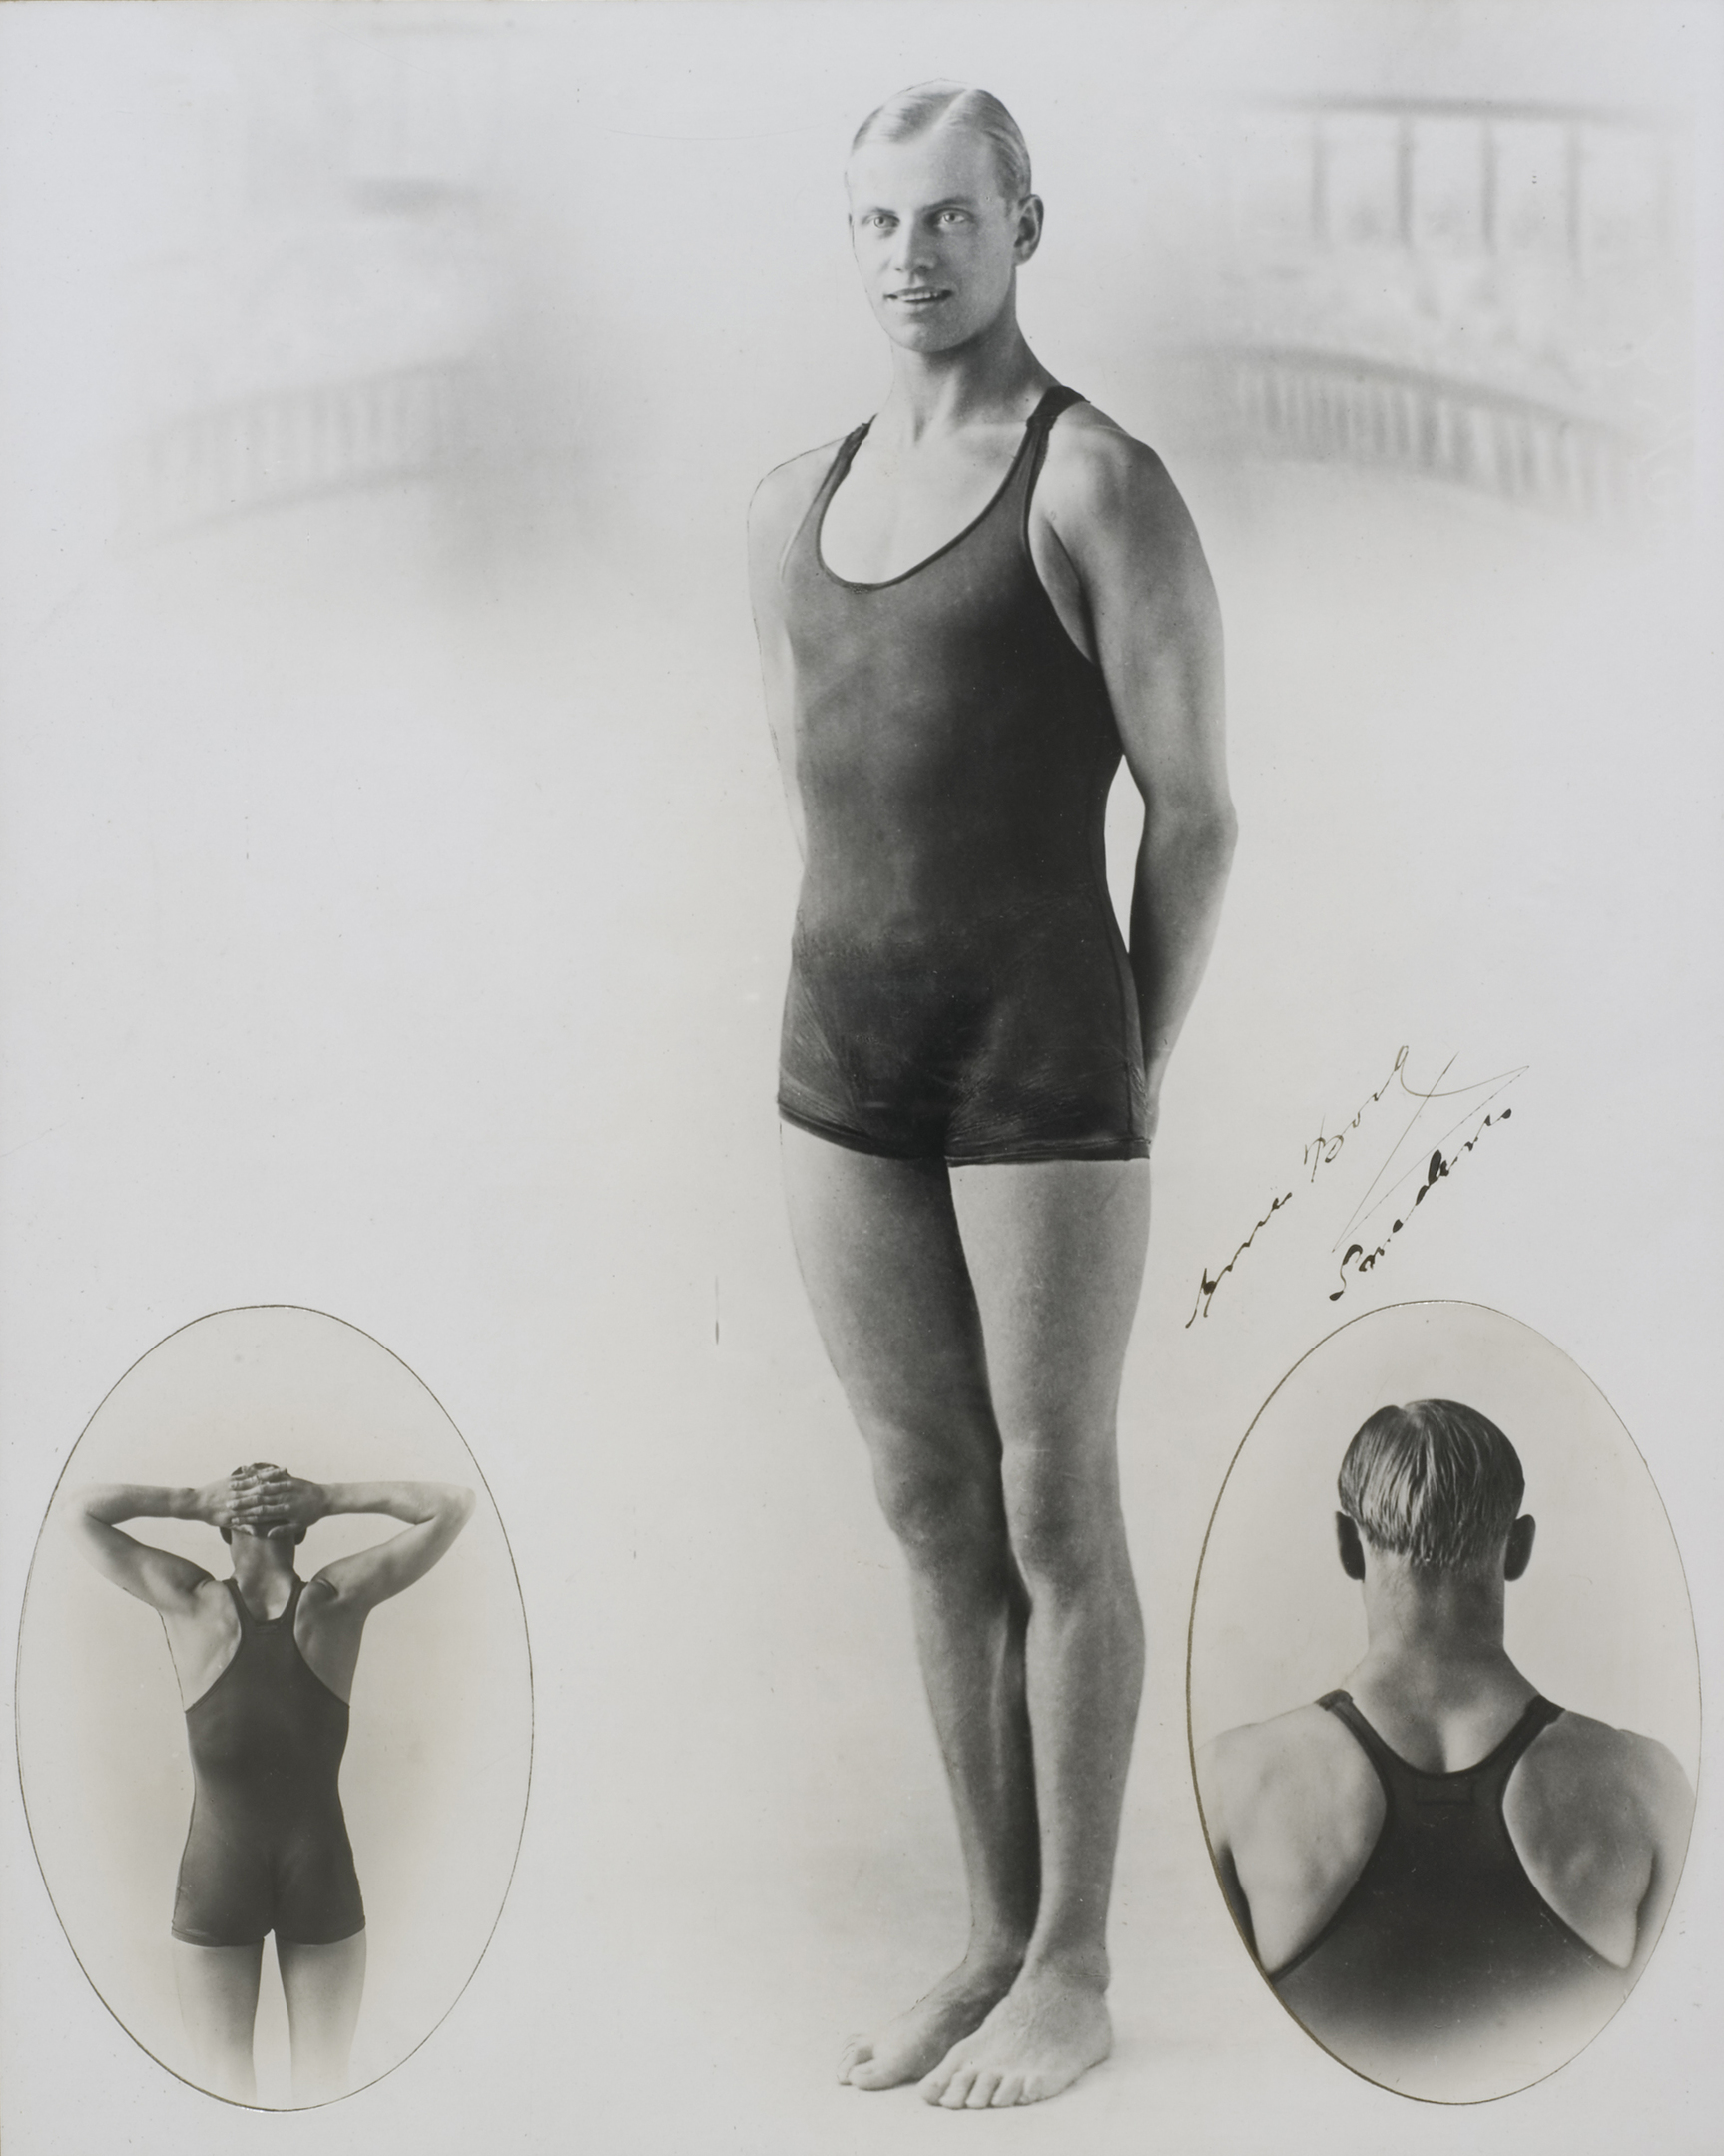 a0adc67067 Dundee's V&A museum to display emigrant Scot's Speedo swimsuit that ...